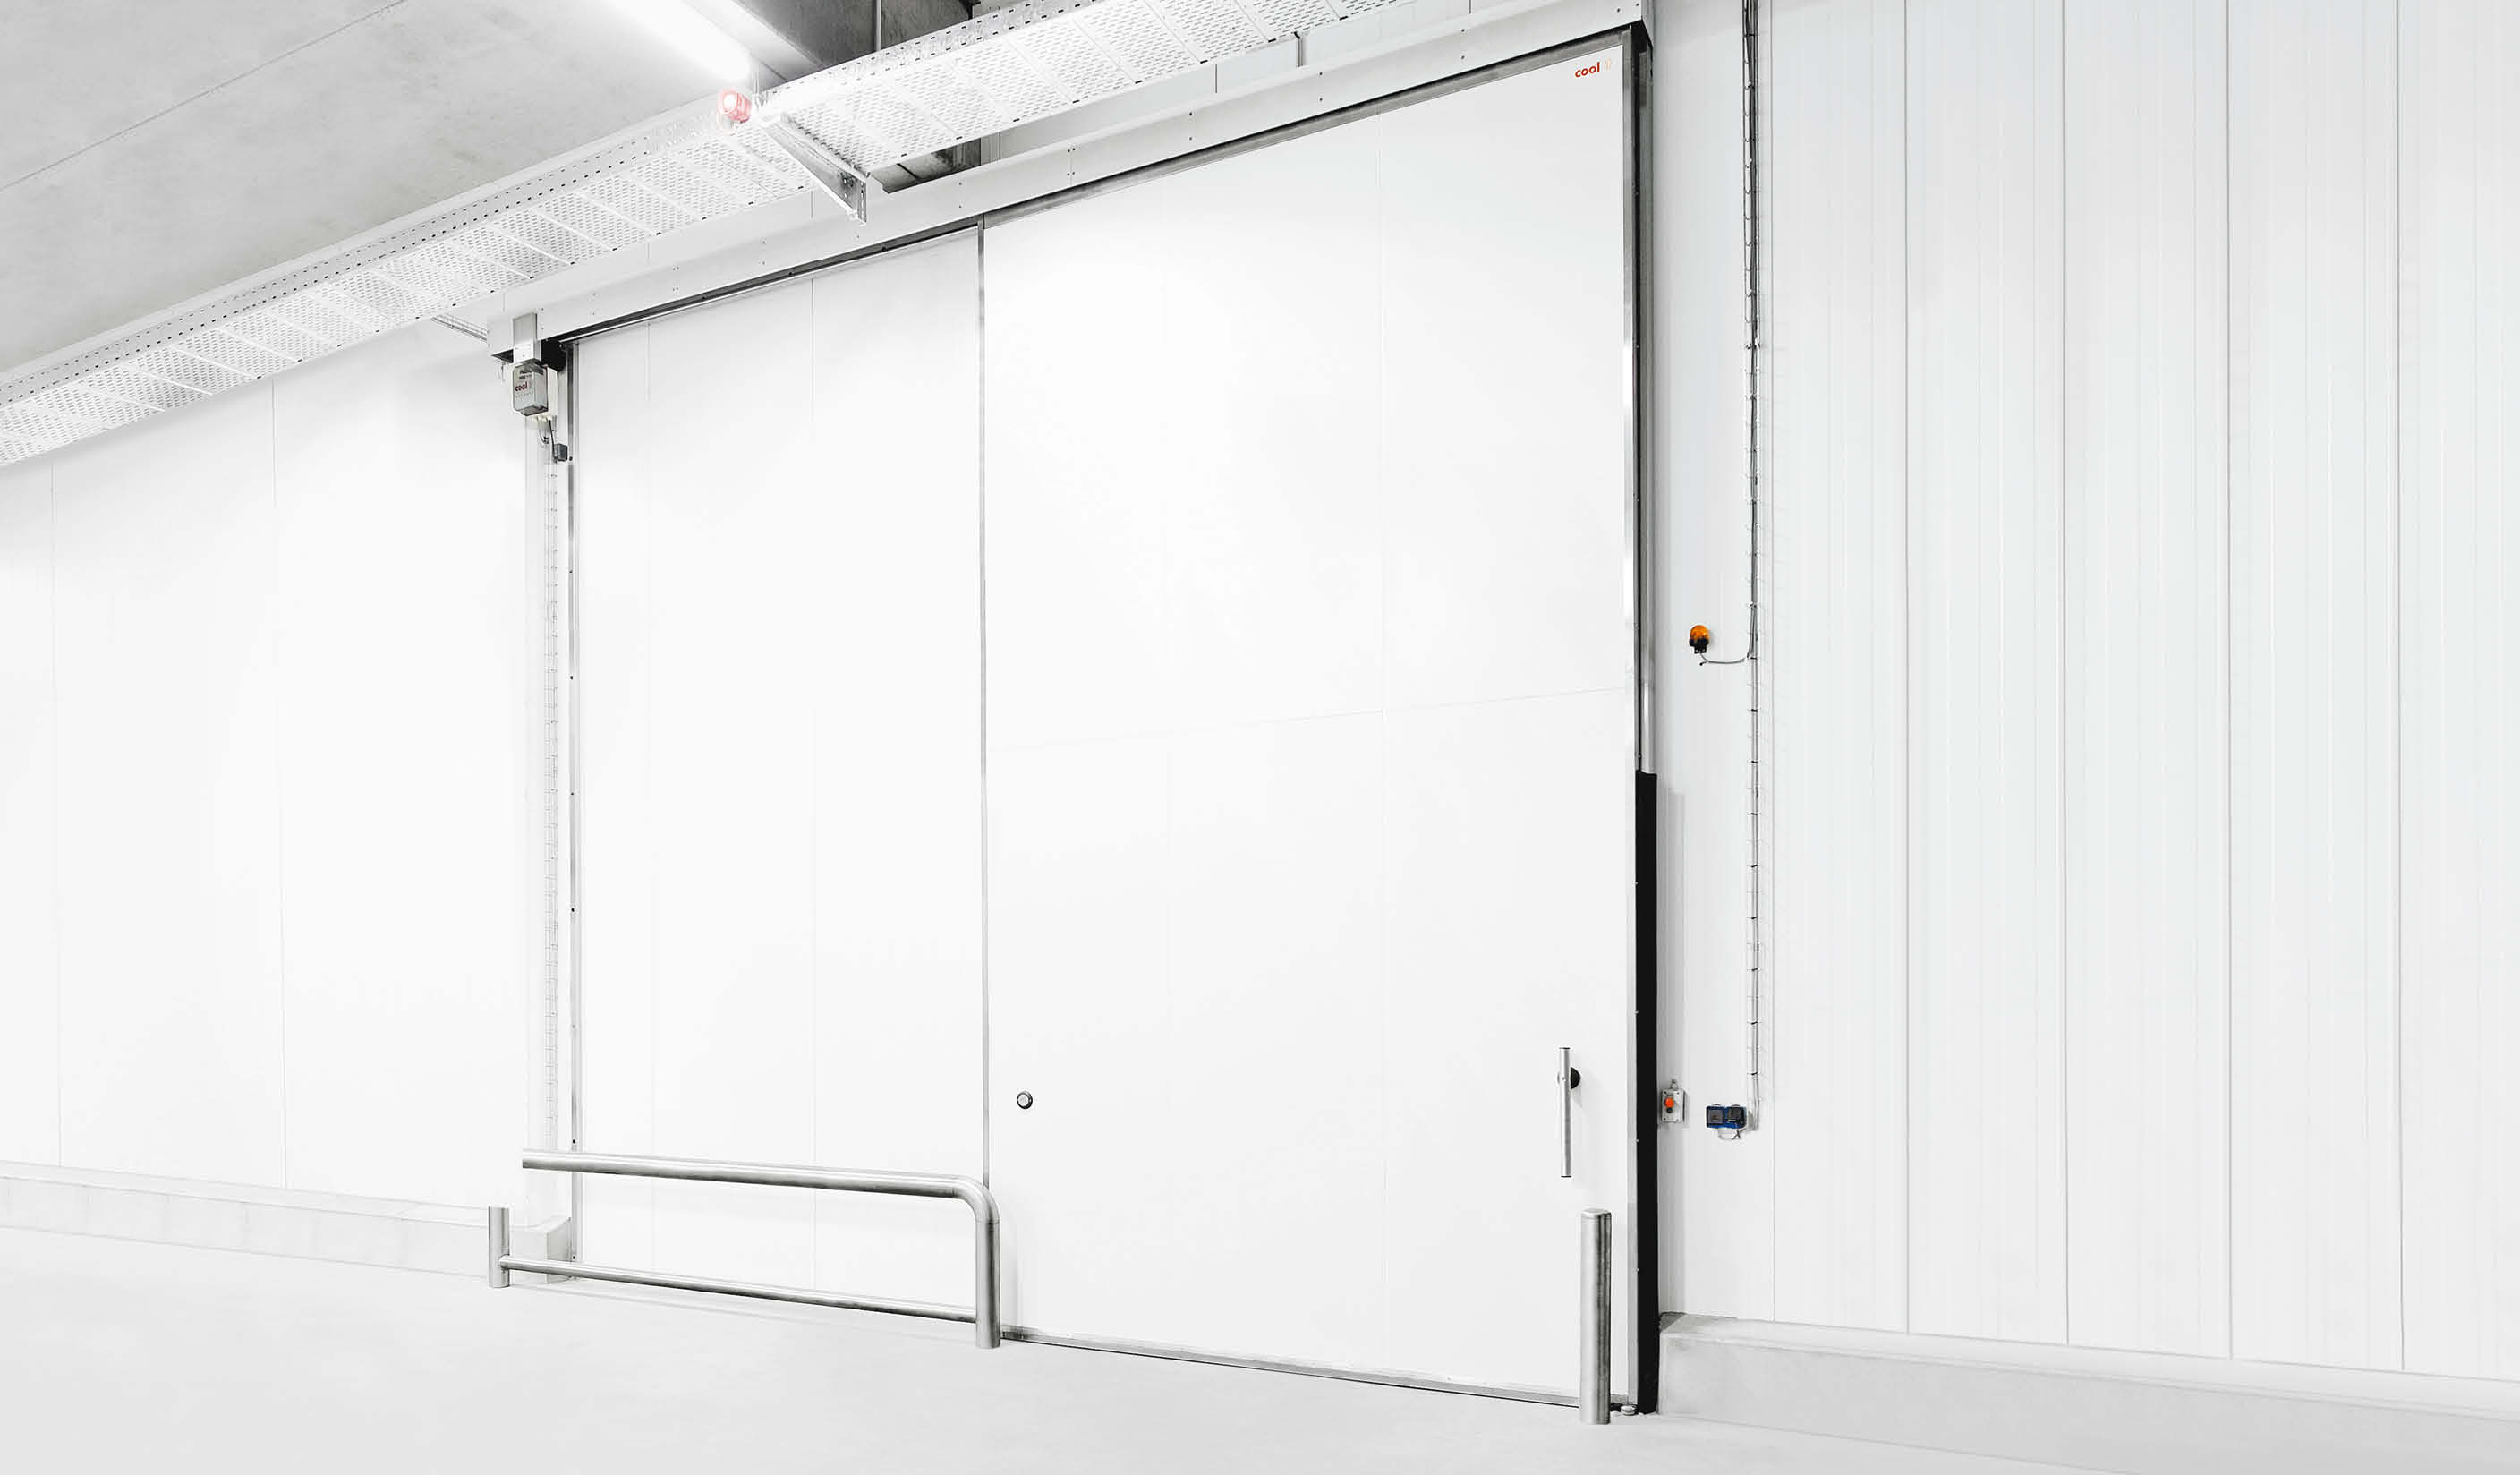 GTS-T30 Fire rated sliding door for freezers